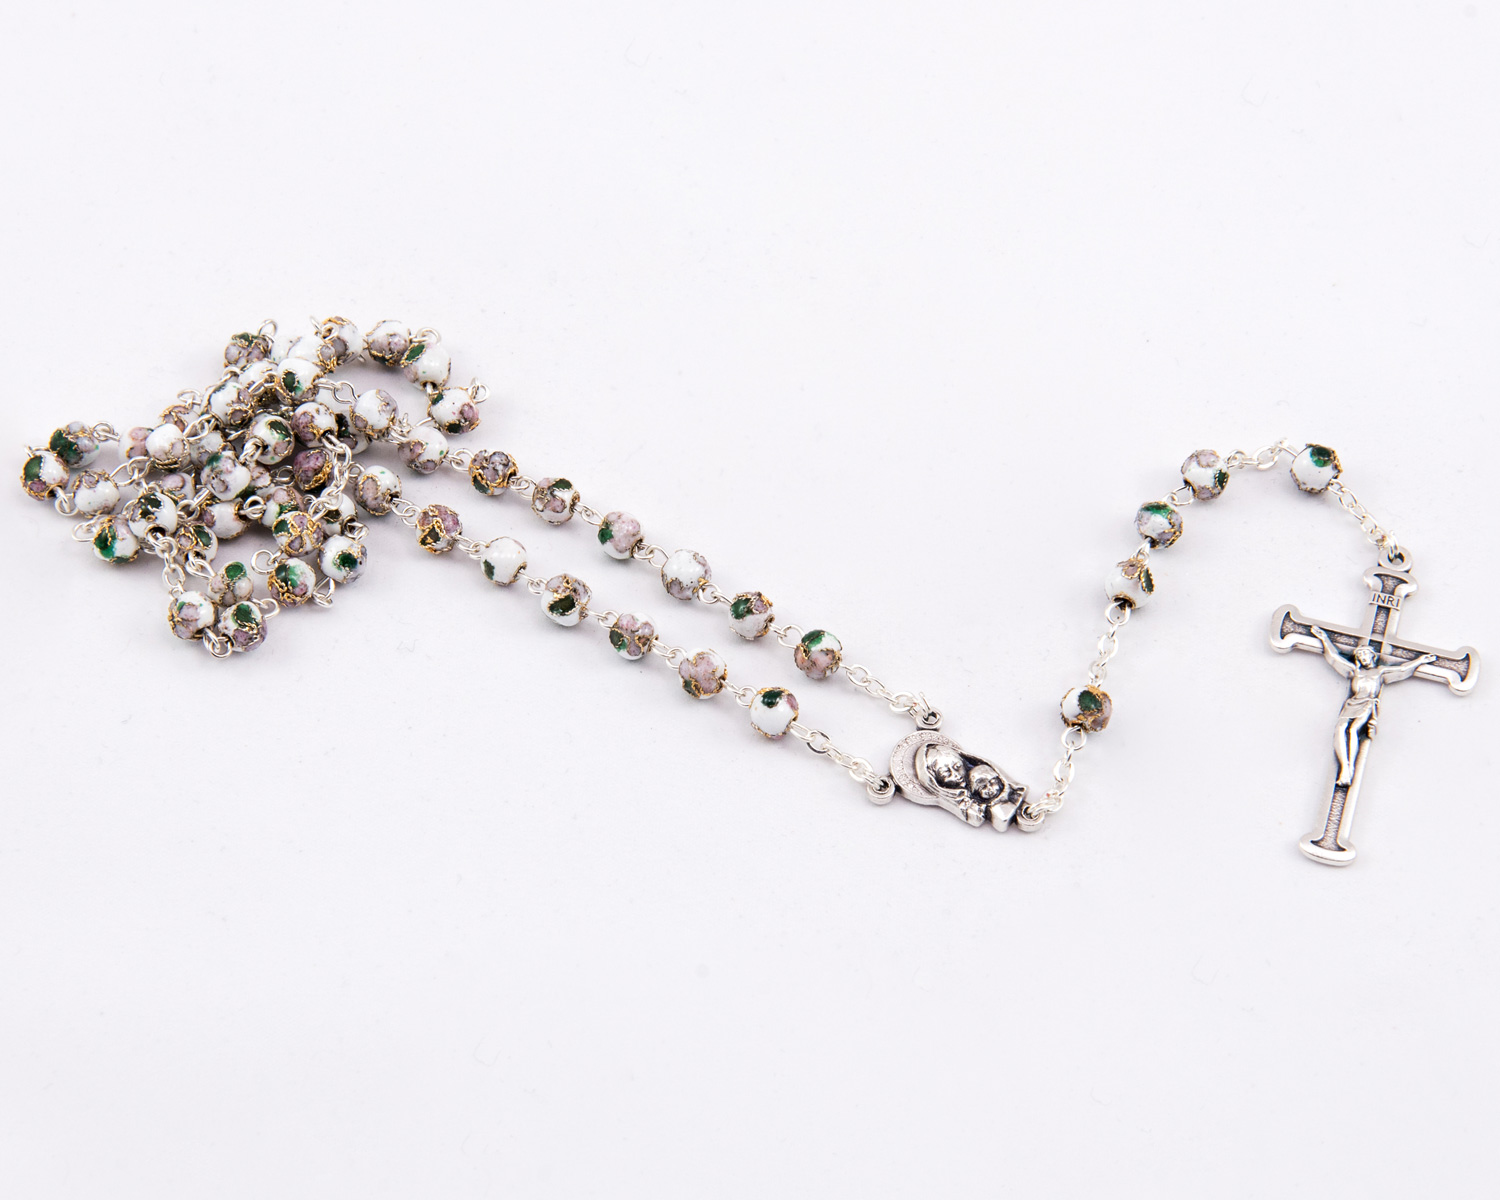 White Cloisonné Rosary - 6mm beads